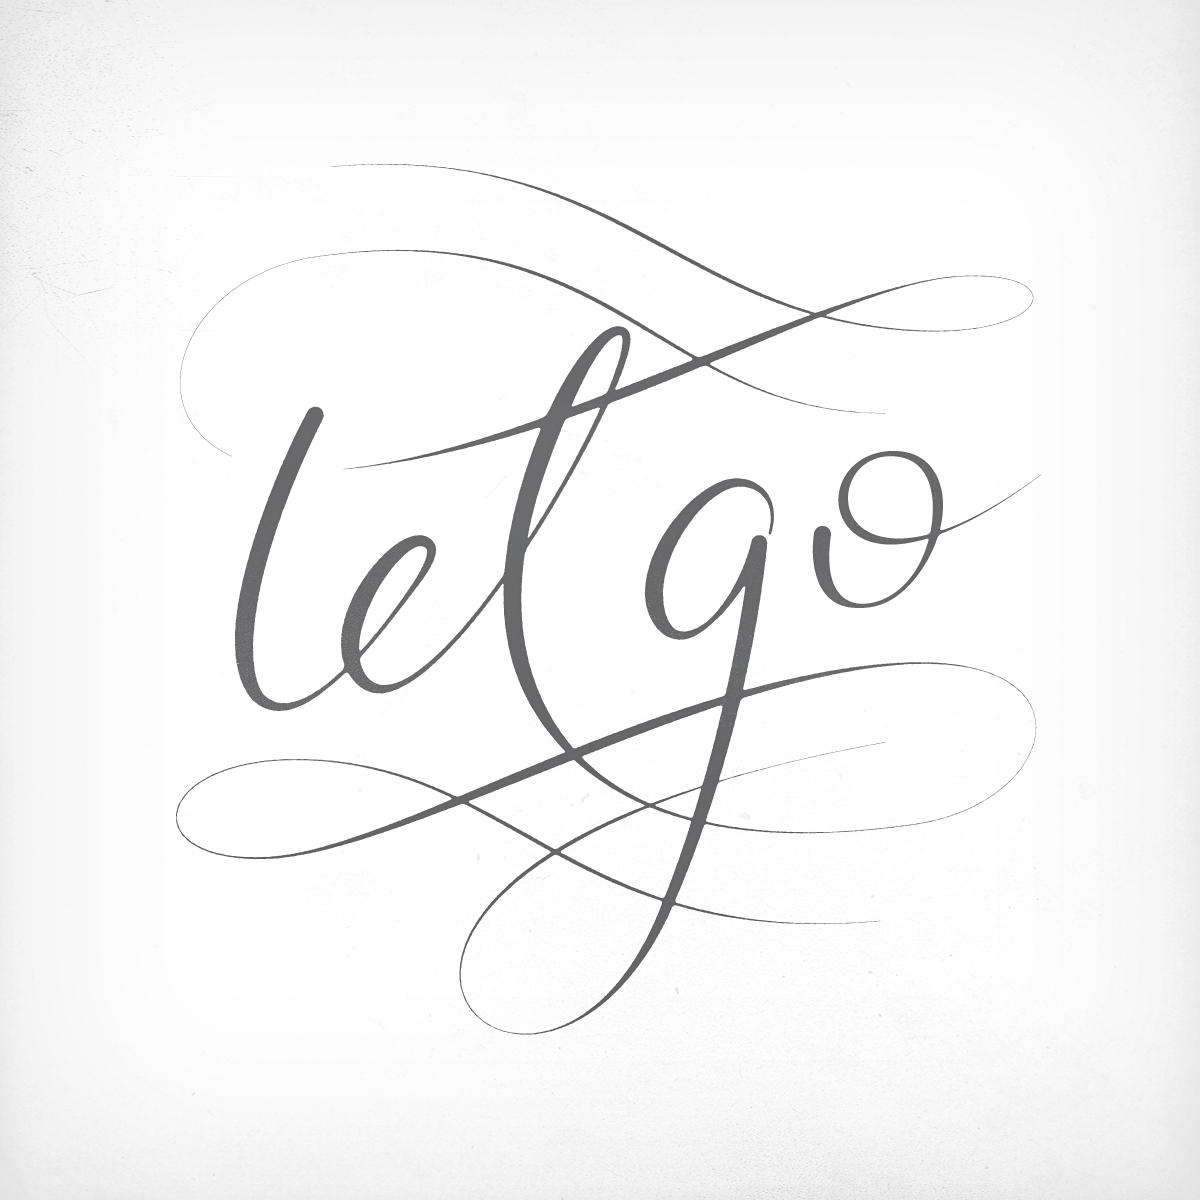 Let_Go_1.jpg by Andy Luce